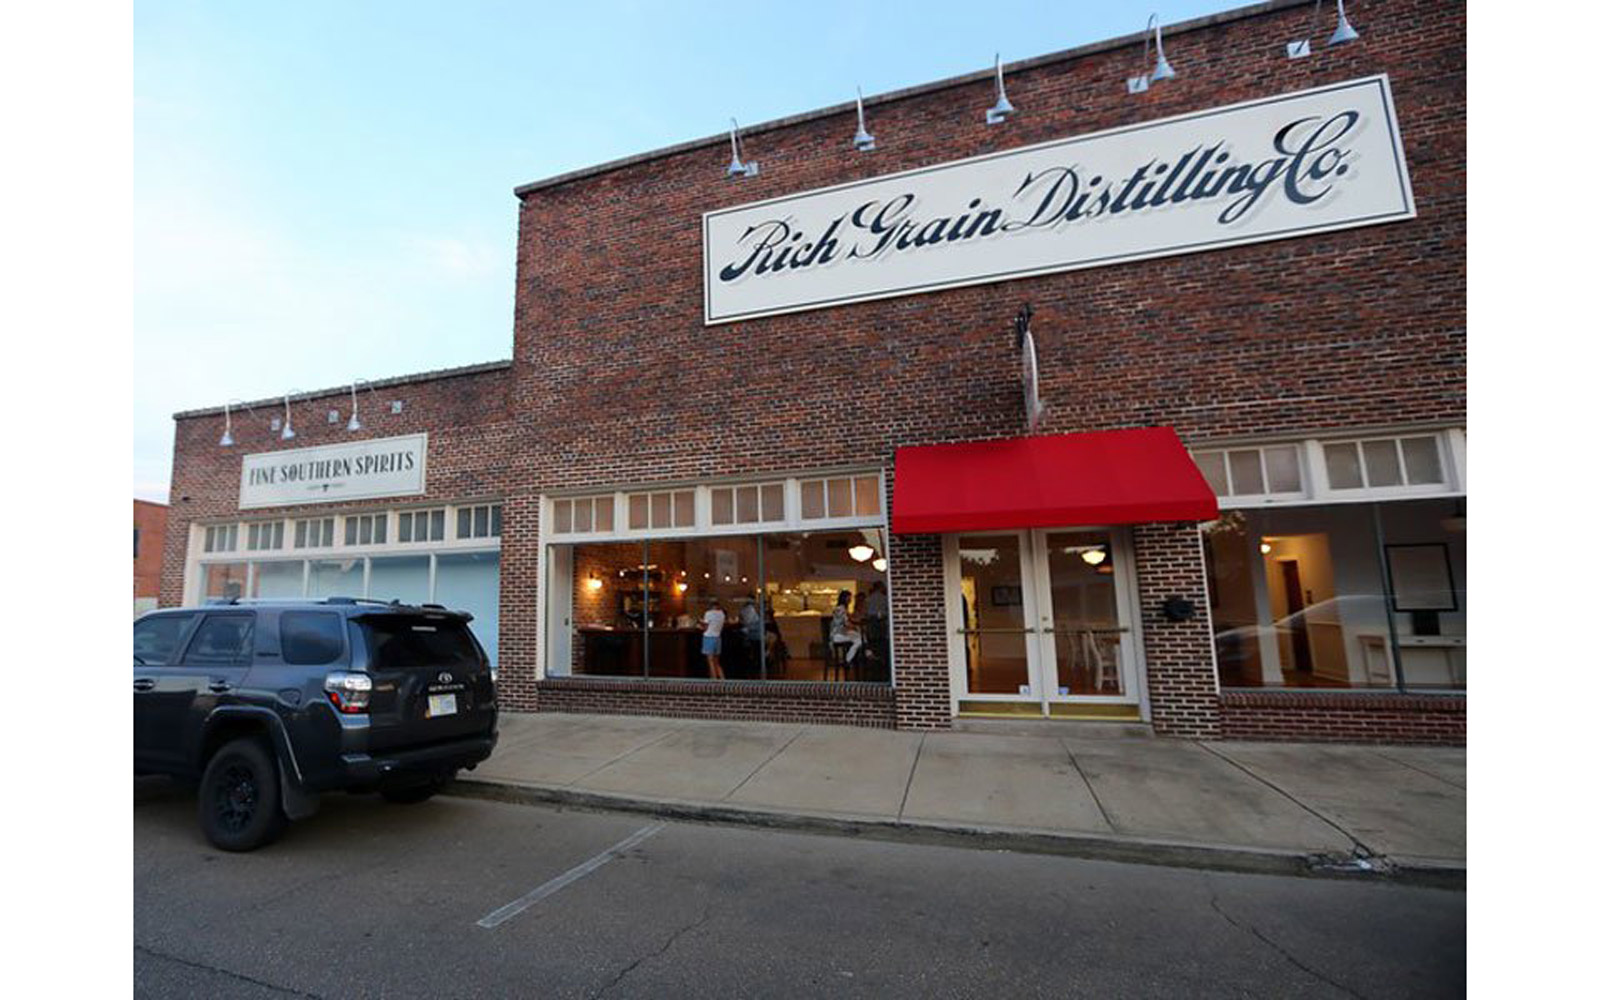 Mississippi: Rich Grain Distilling Co.